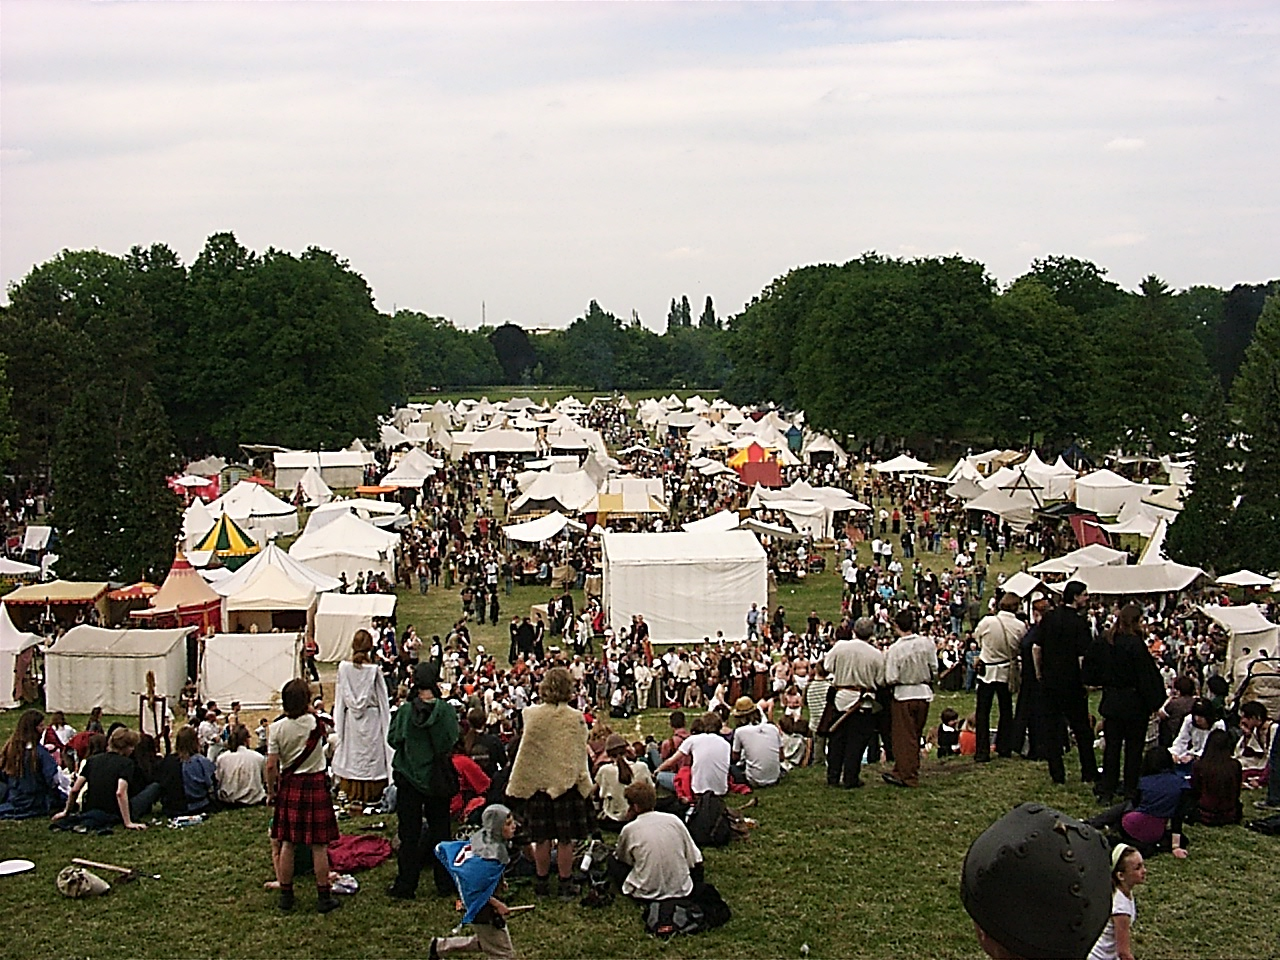 spectaculum worms 2008 20150509 2068896830